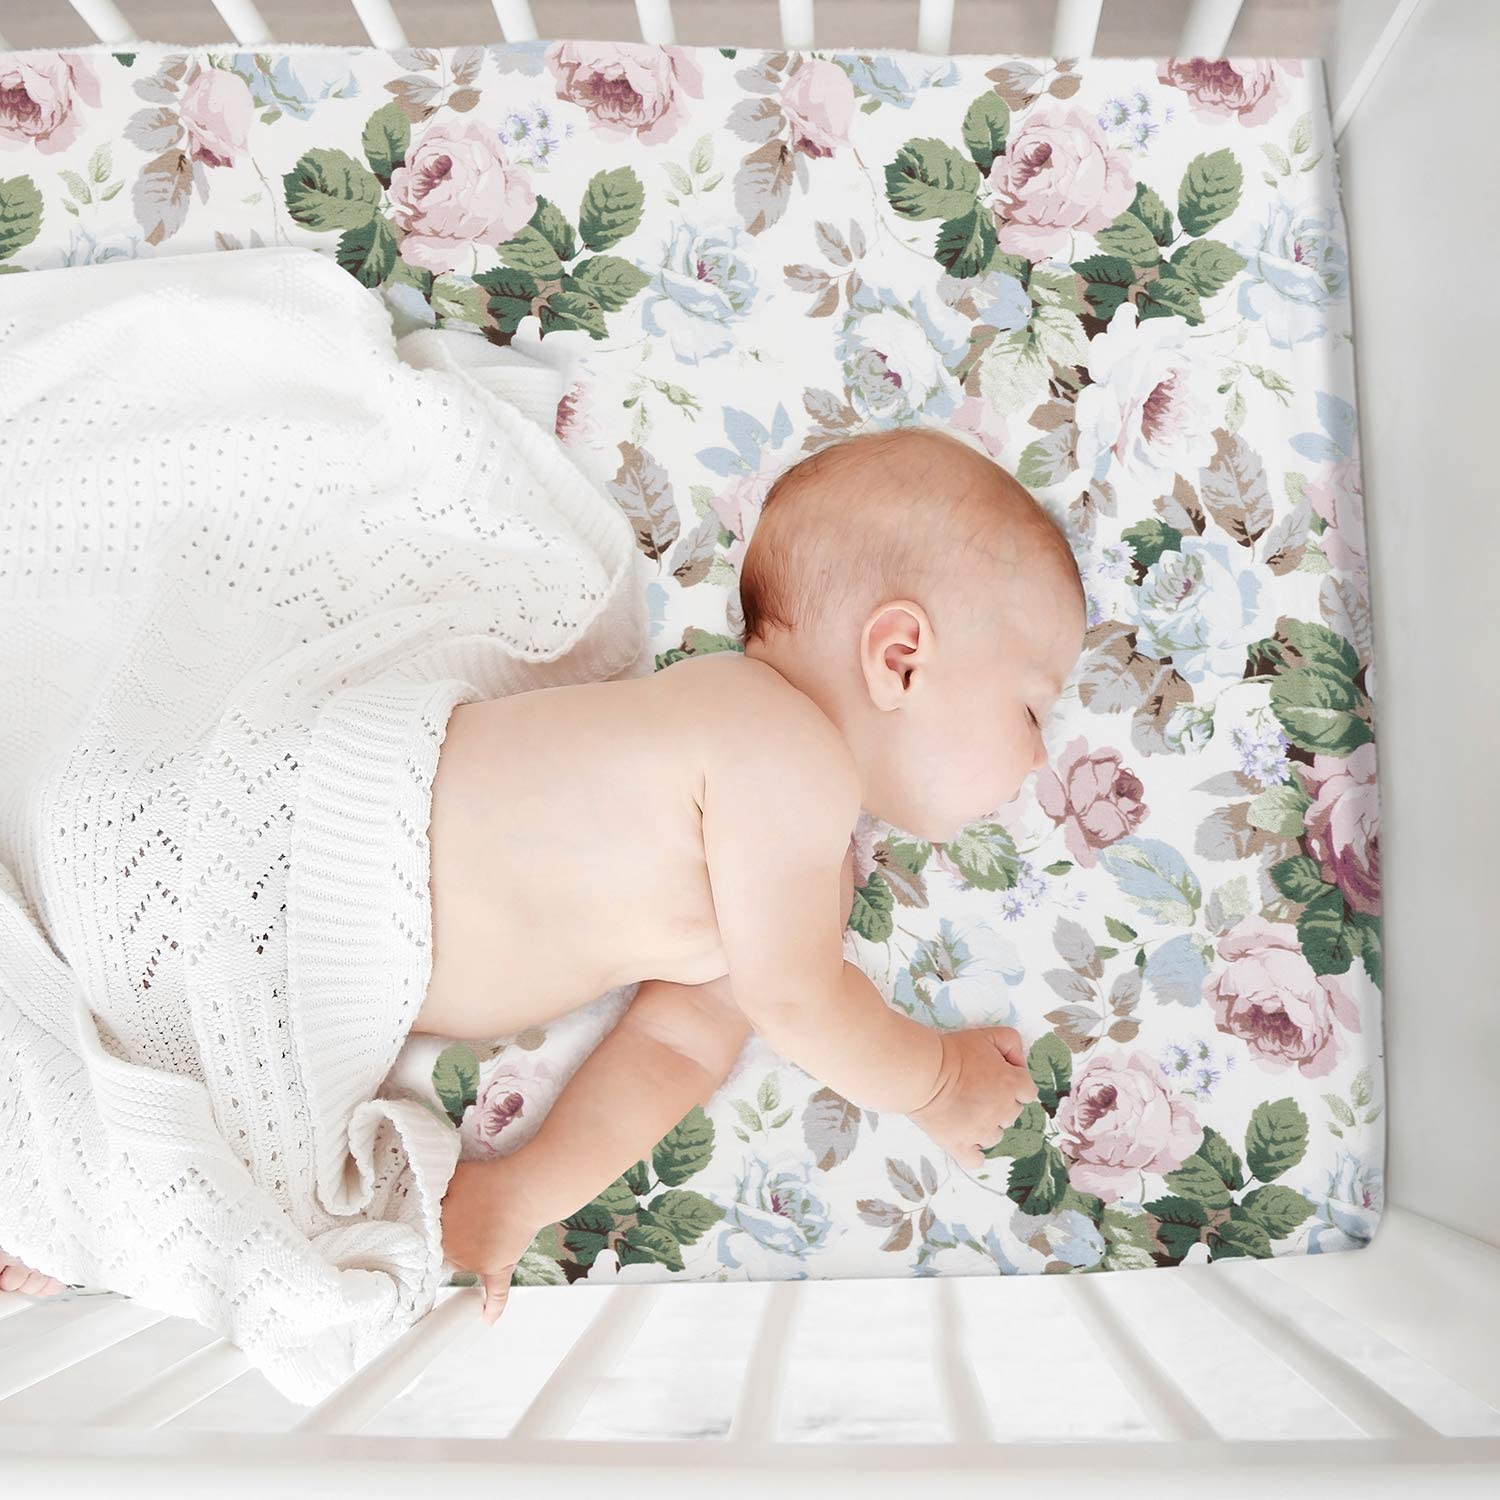 Chicco Lullago 2 Pack Floral Waterproof Sheet Set for Baby Girls Ingenuity Mini Co-Sleepers Like Oval Halo Momcozy Bassinet Sheets Fit for Bassinet Mattress Pad Cover Brown